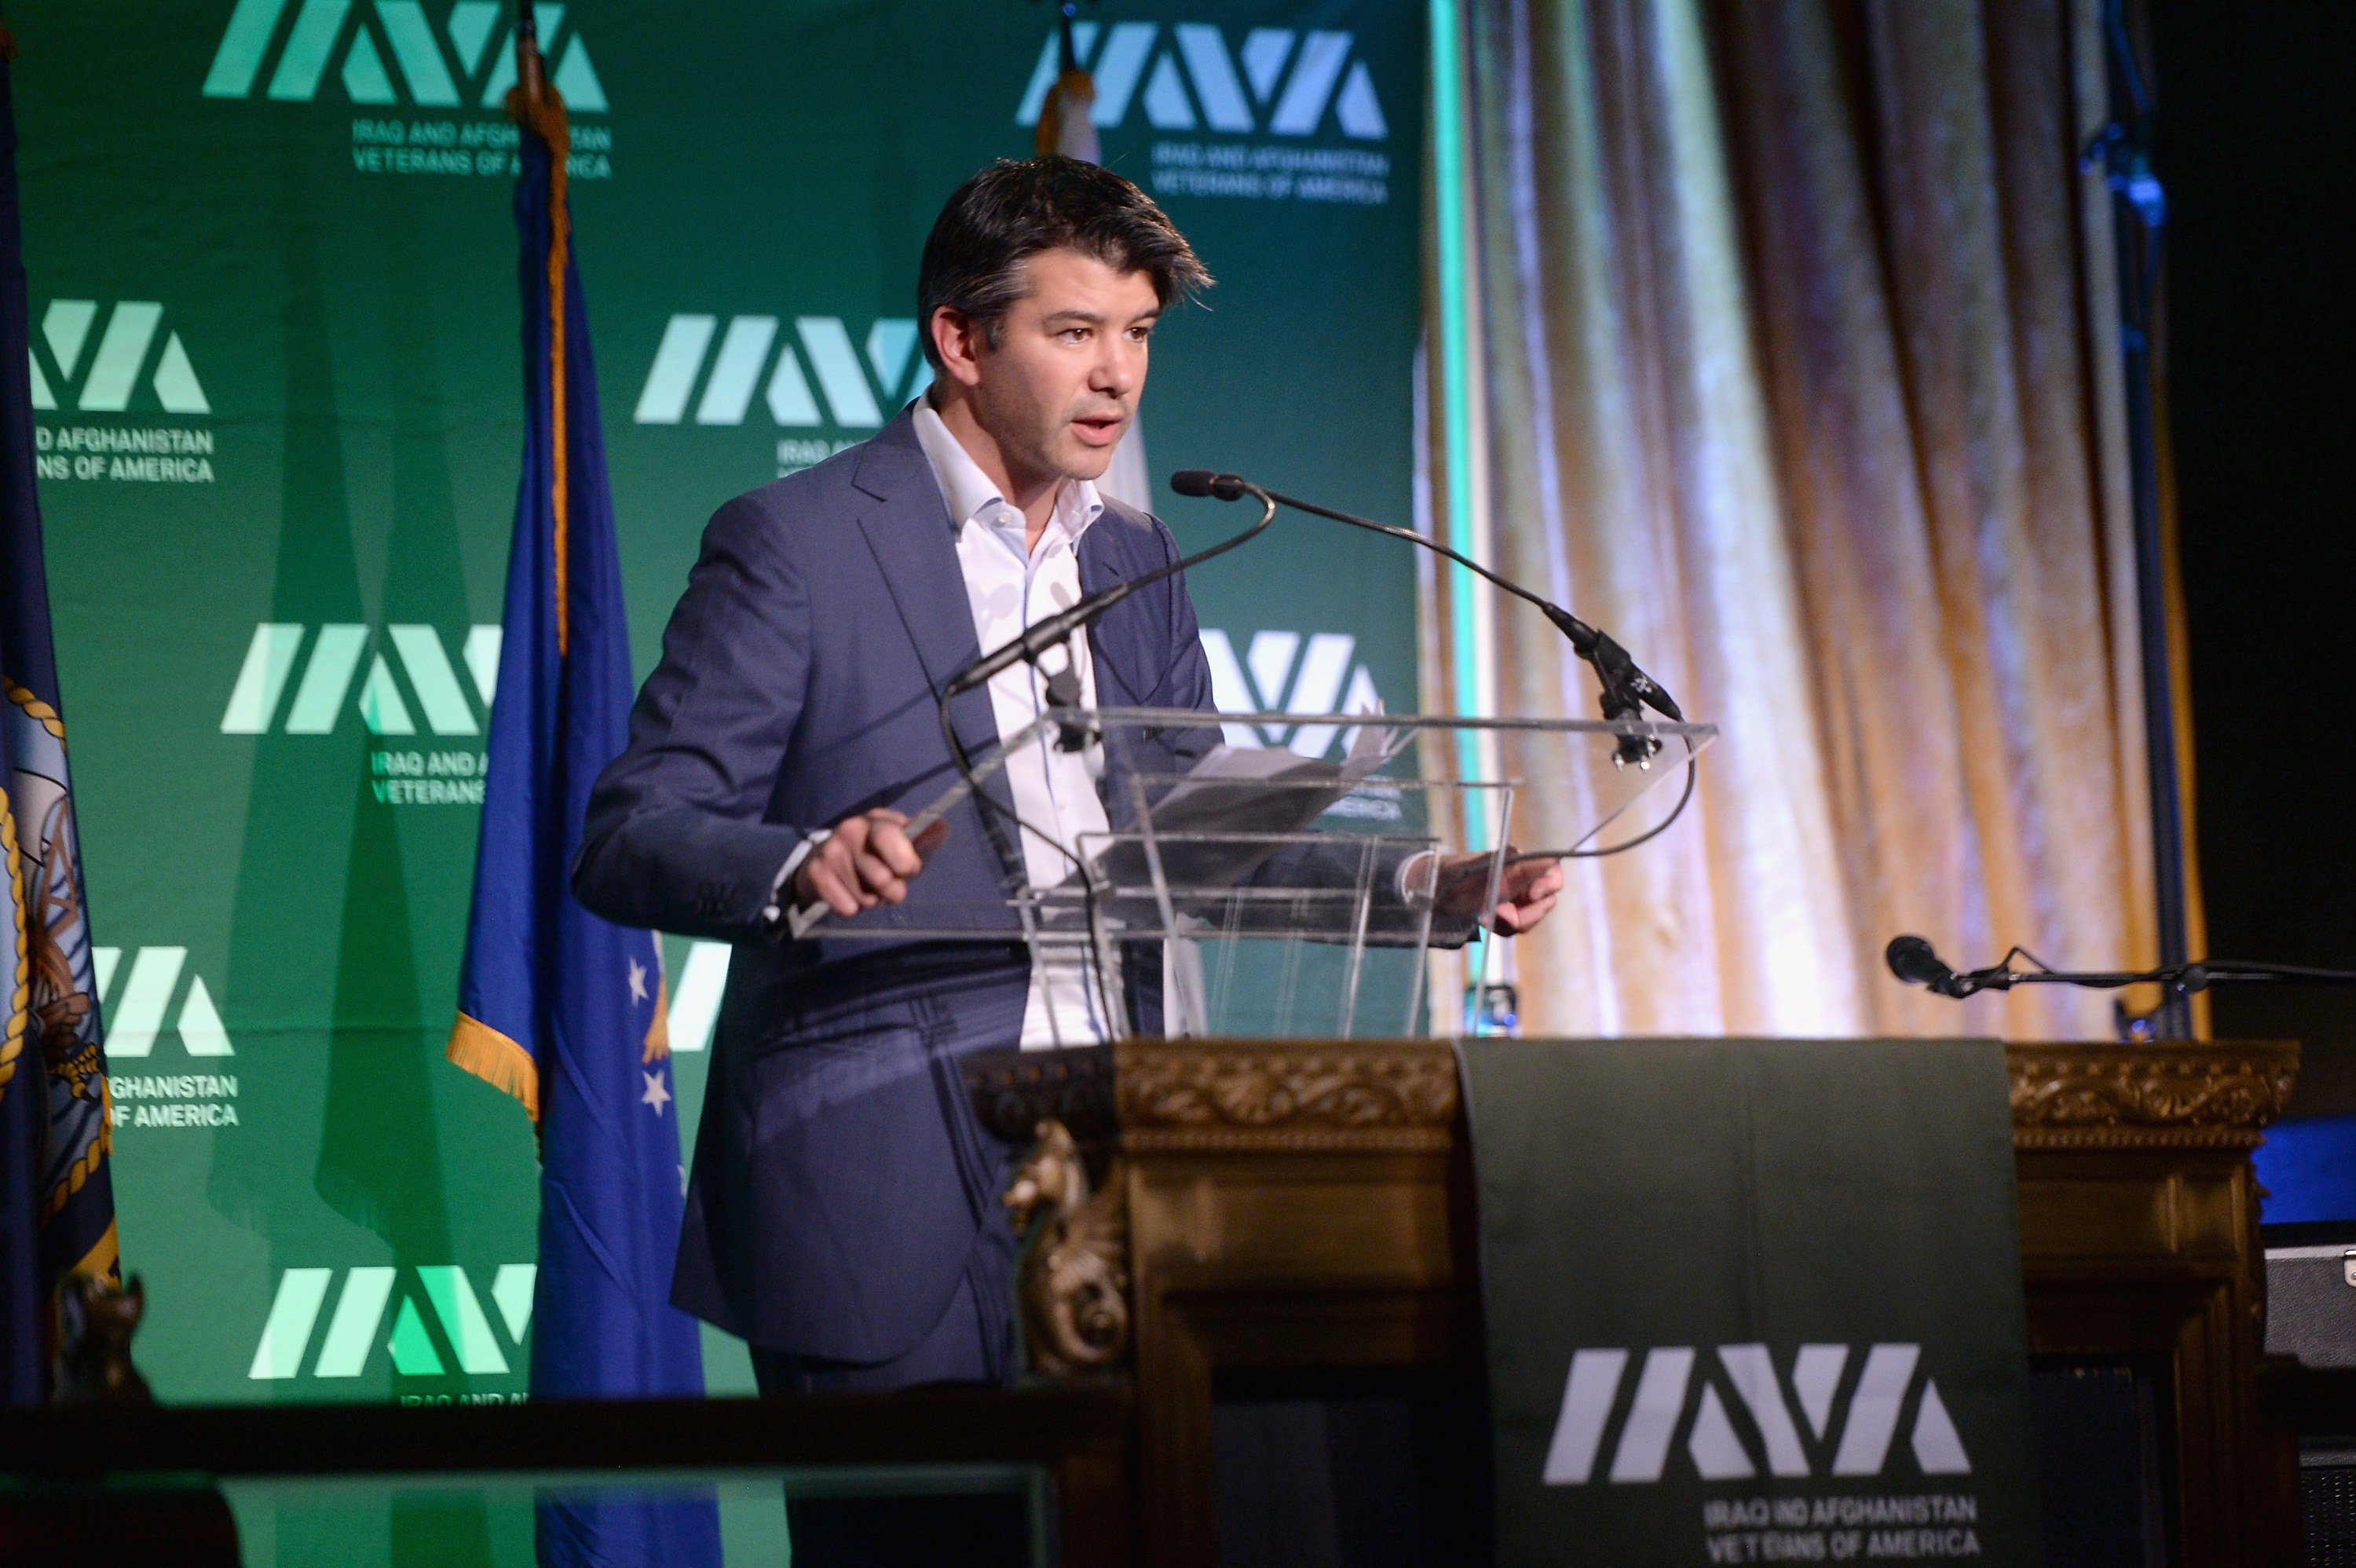 Uber's Travis Kalanick Announces Leave Of Absence; Company Adopts Harassment Policies